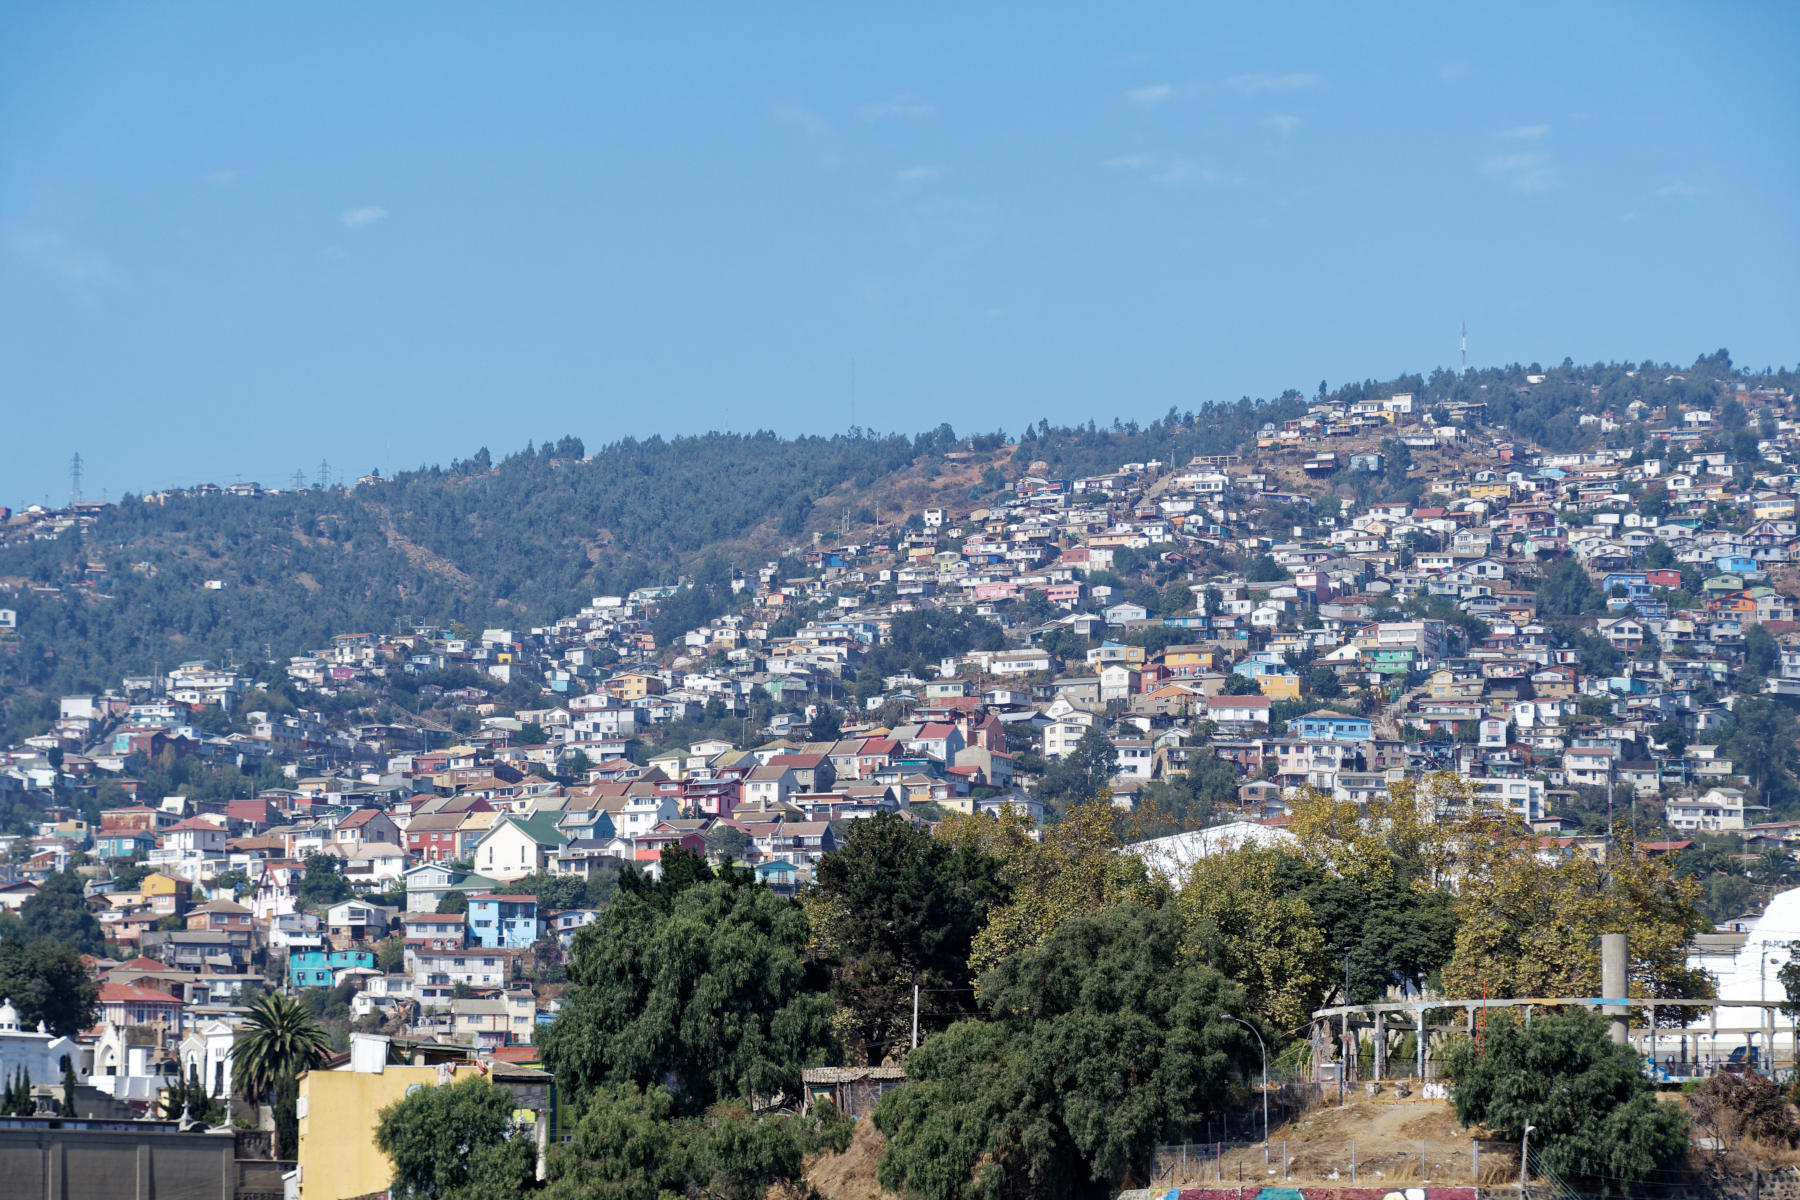 The hillside neighbourhoods of Valparaiso